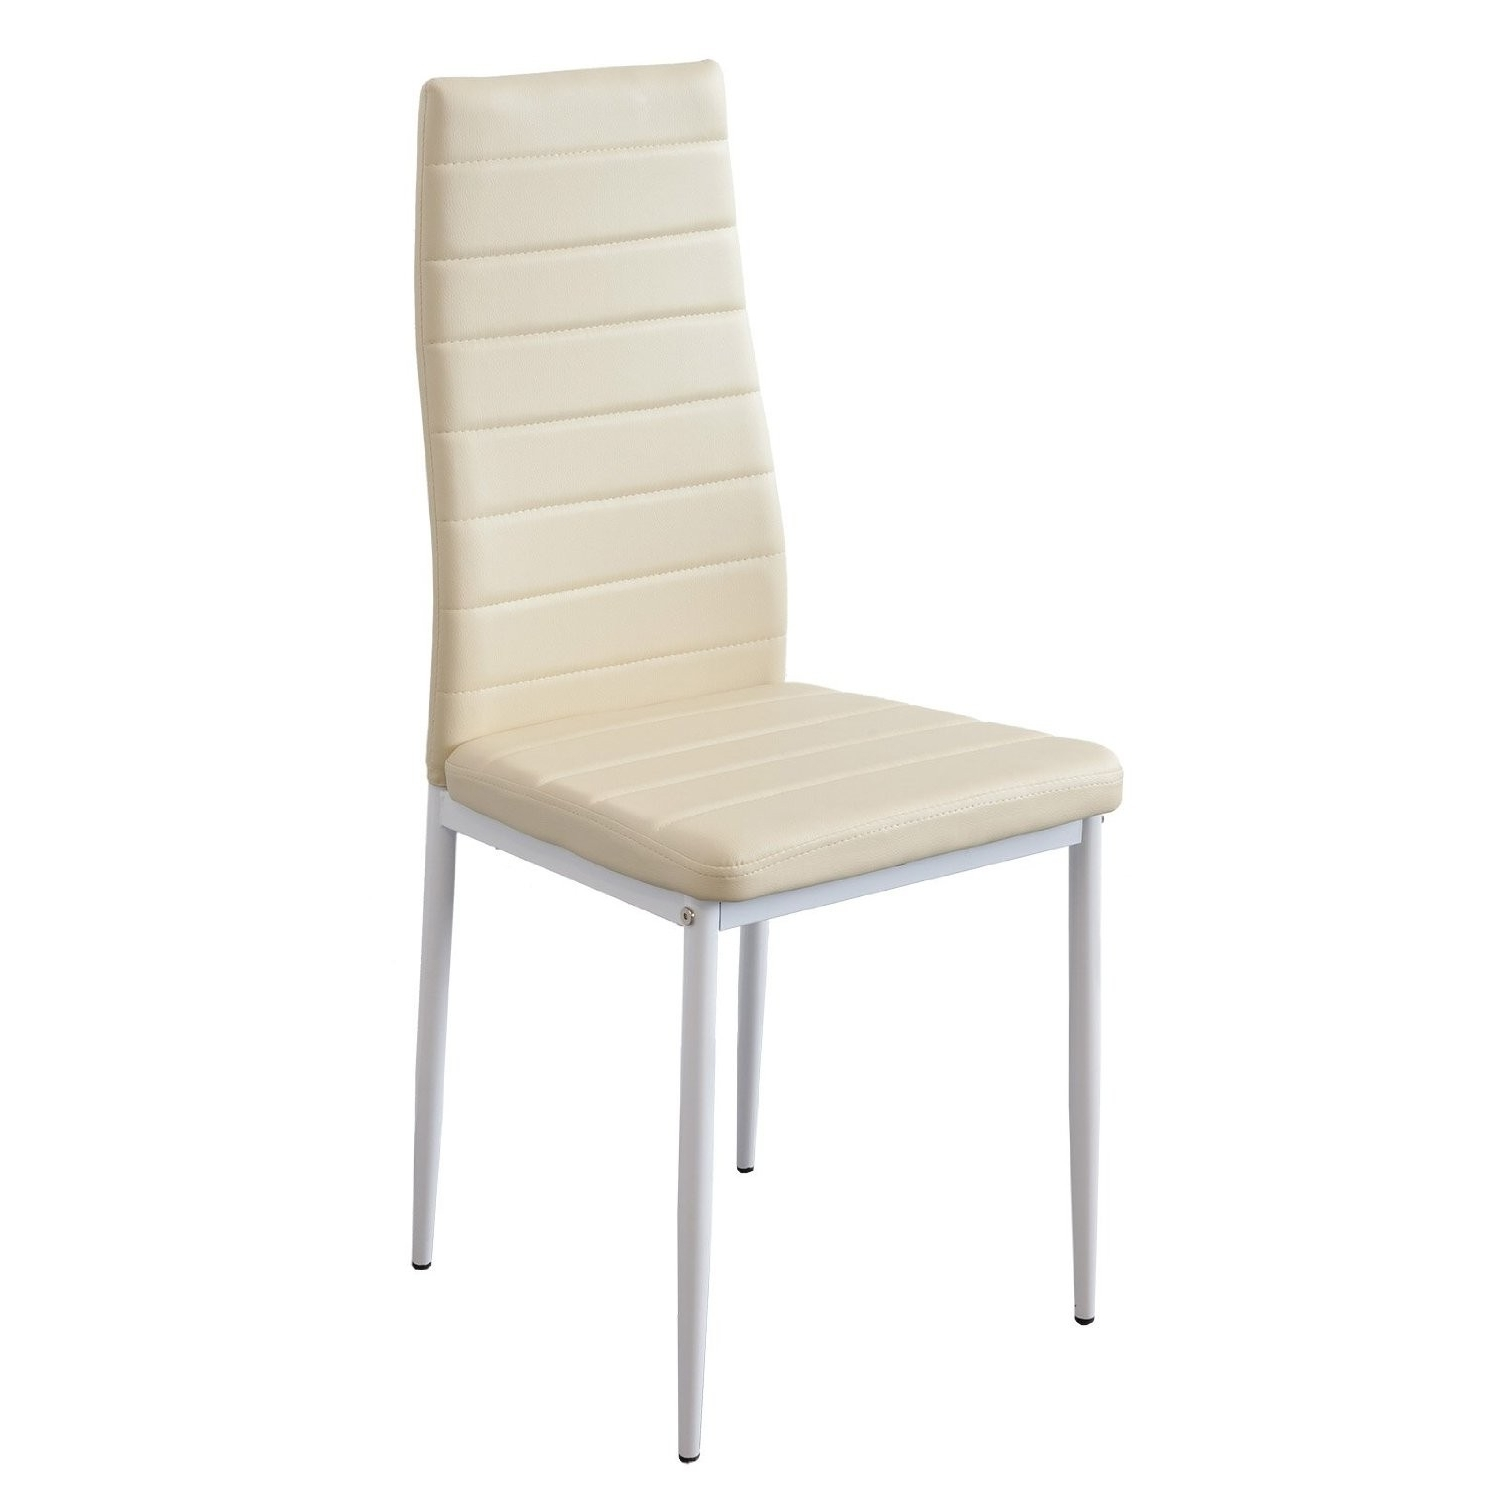 Cream Faux Leather Dining Chairs Intended For Well Liked Modern Red Faux Leather Foam Padded Dining Chairs With Metal Legs (Gallery 4 of 25)